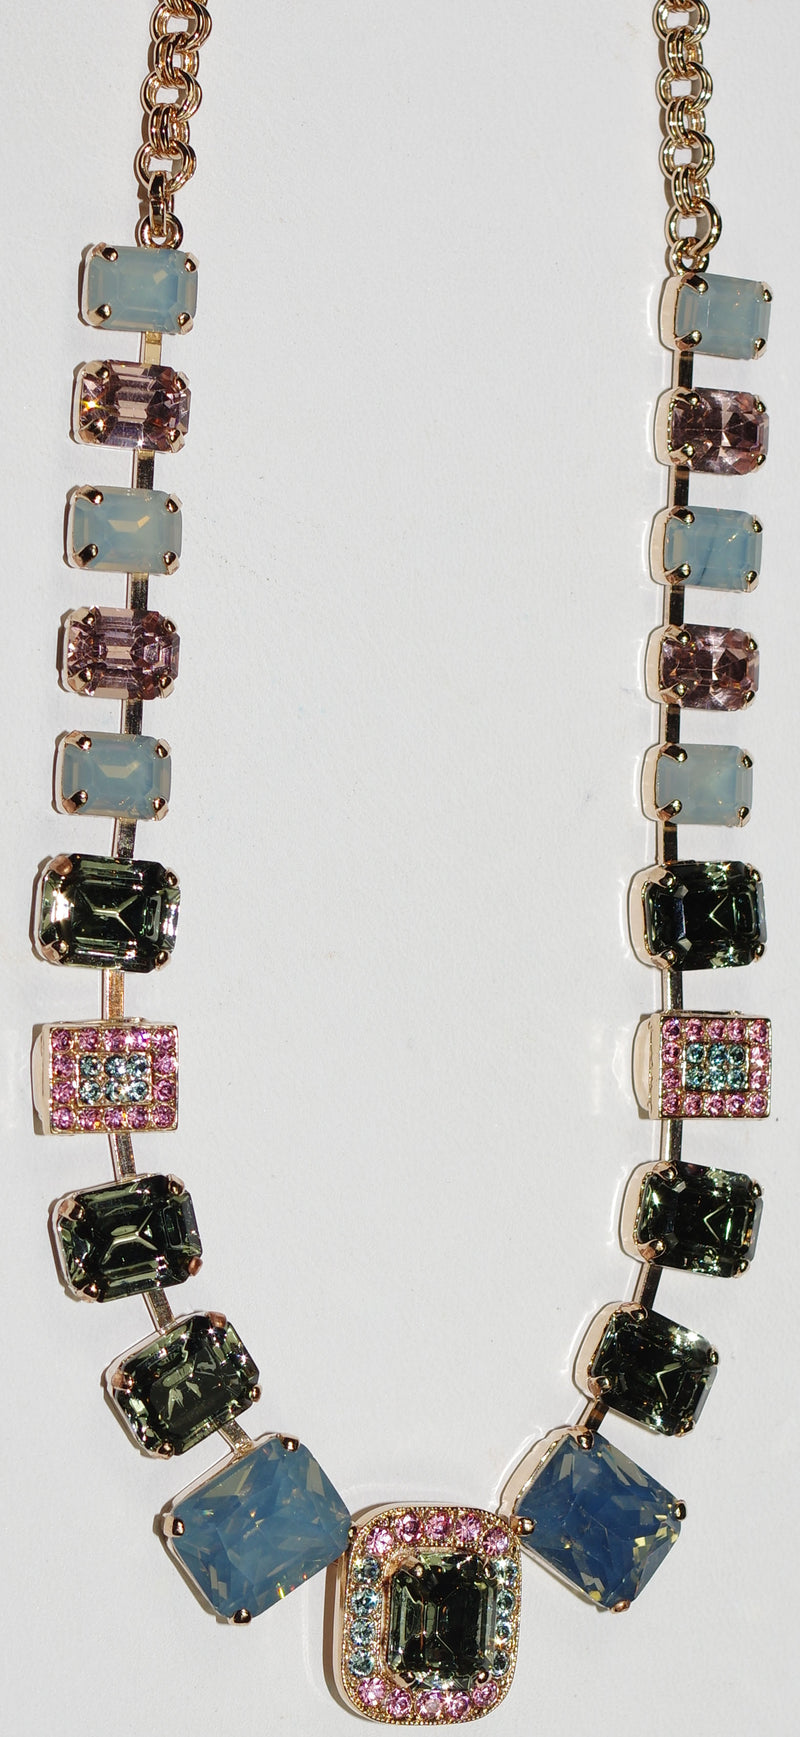 "MARIANA NECKLACE MADAGASGAR: pink, grey, blue stones in rose gold setting, 20"" adjustable chain"